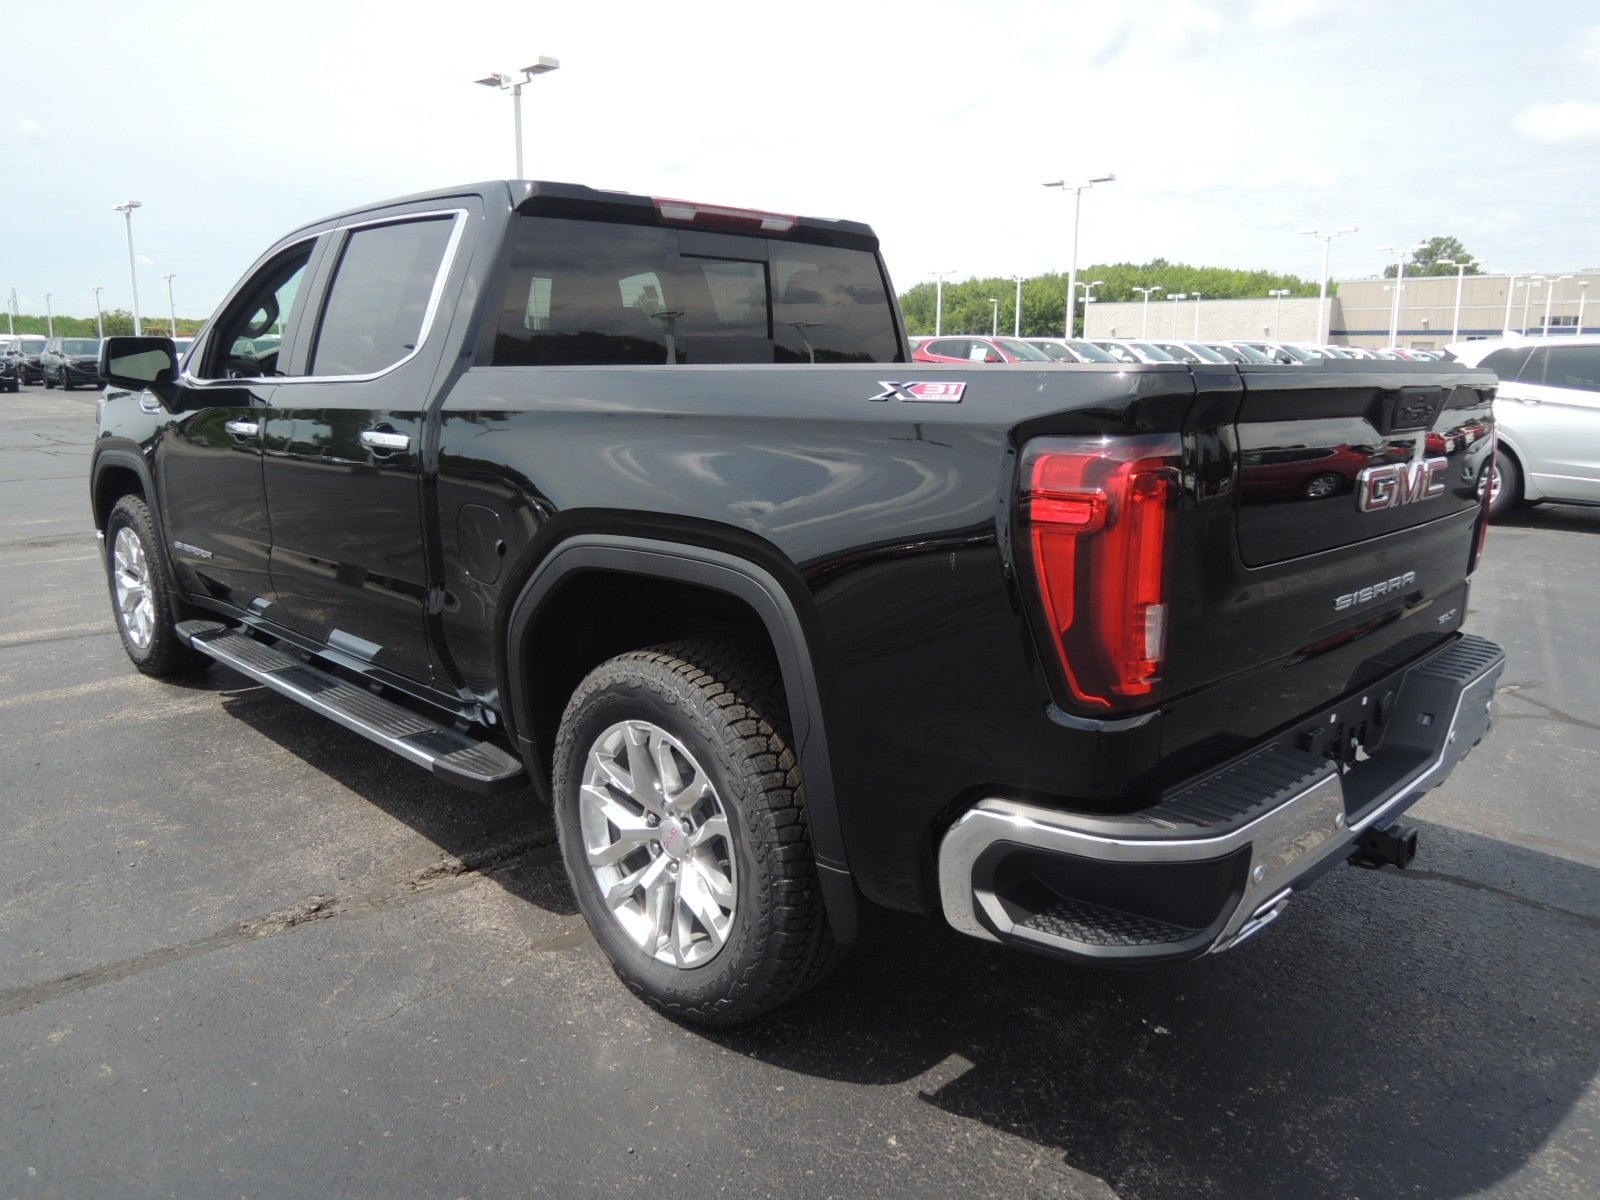 2021 GMC Sierra 1500 Crew Cab 4x4, Pickup #MT11X99 - photo 11